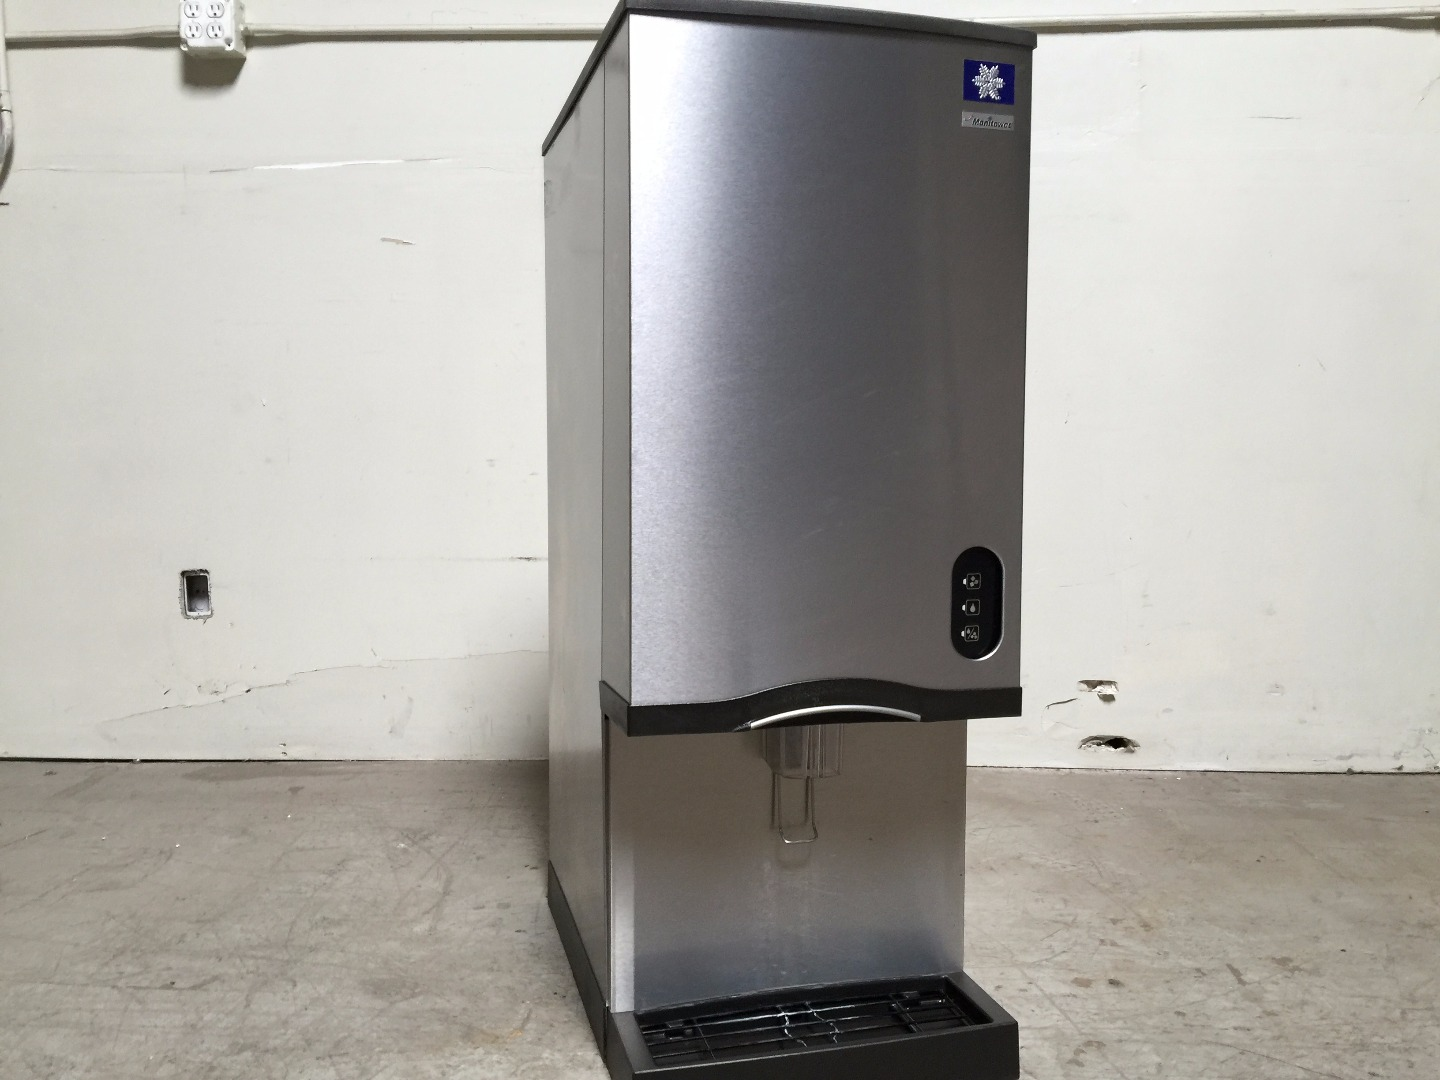 Used Manitowoc 2013 Rns 20a 161 Countertop Nugget Ice Maker W Water Dispenser